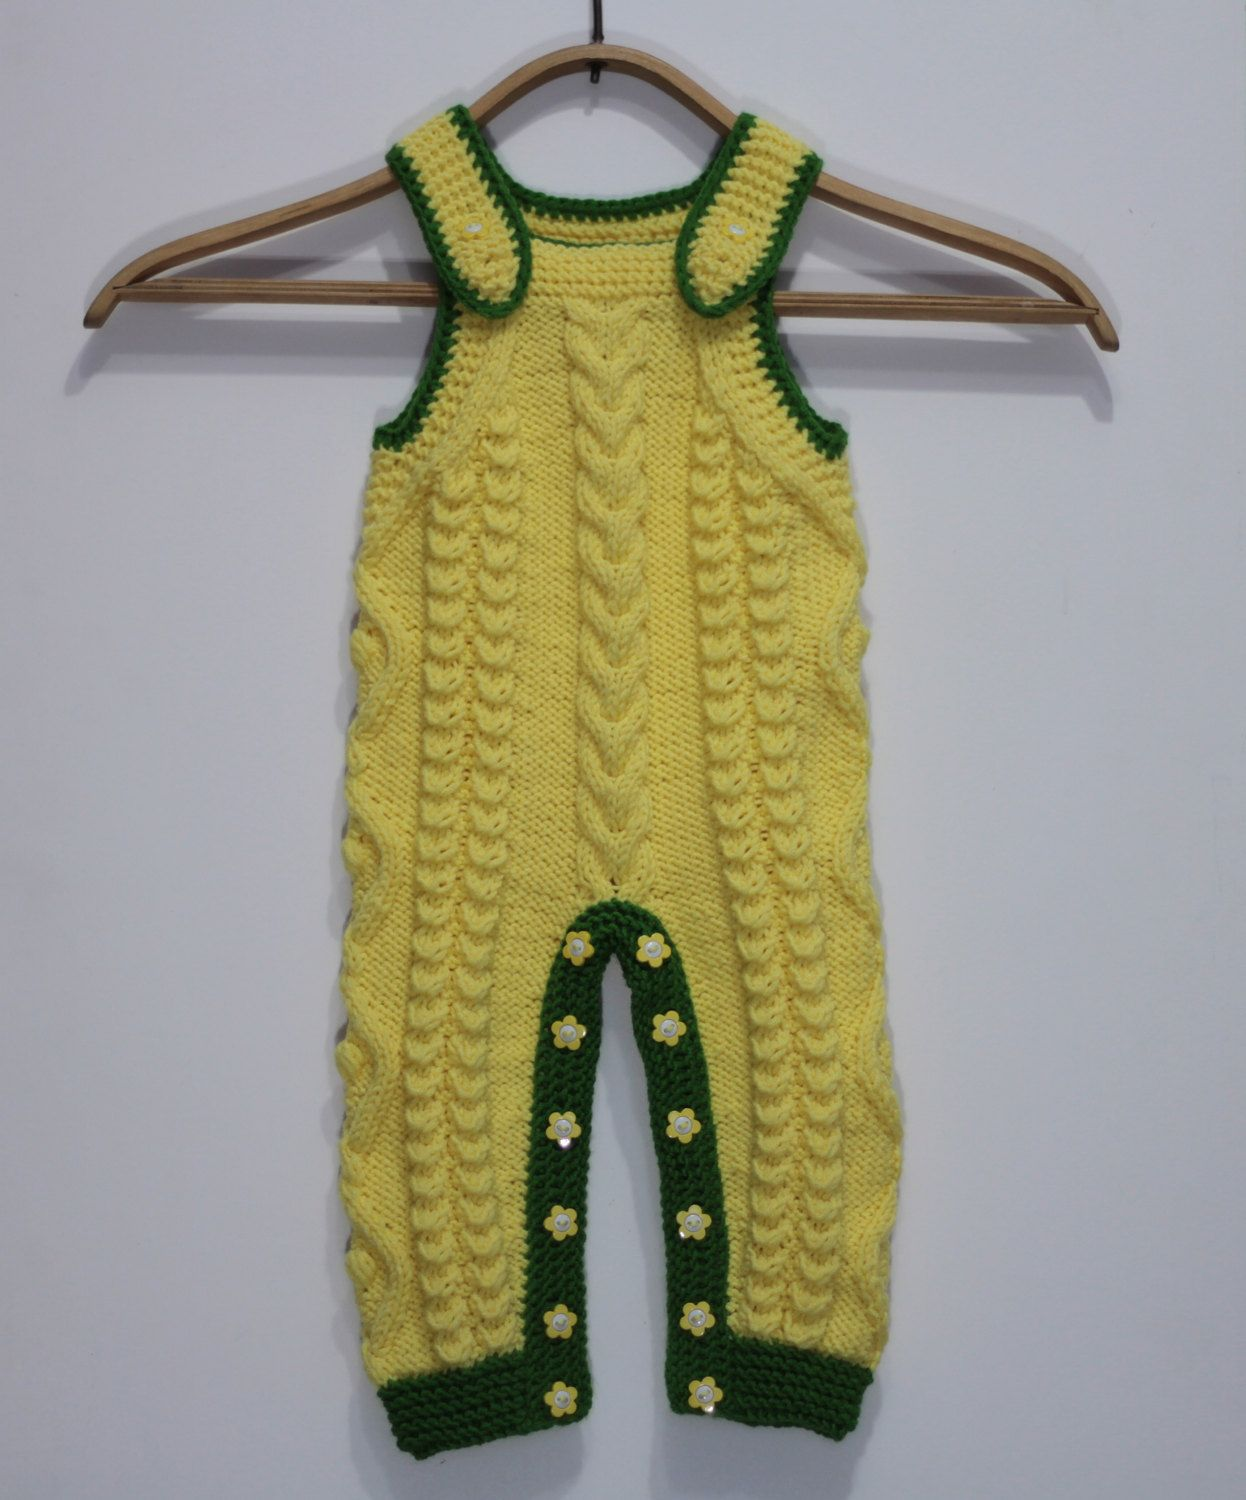 Knit baby romper - knitted yellow jumpsuit - toddler all in one - knit baby jumpsuit - yellow green knitted rompers by FluffyShursh on Etsy